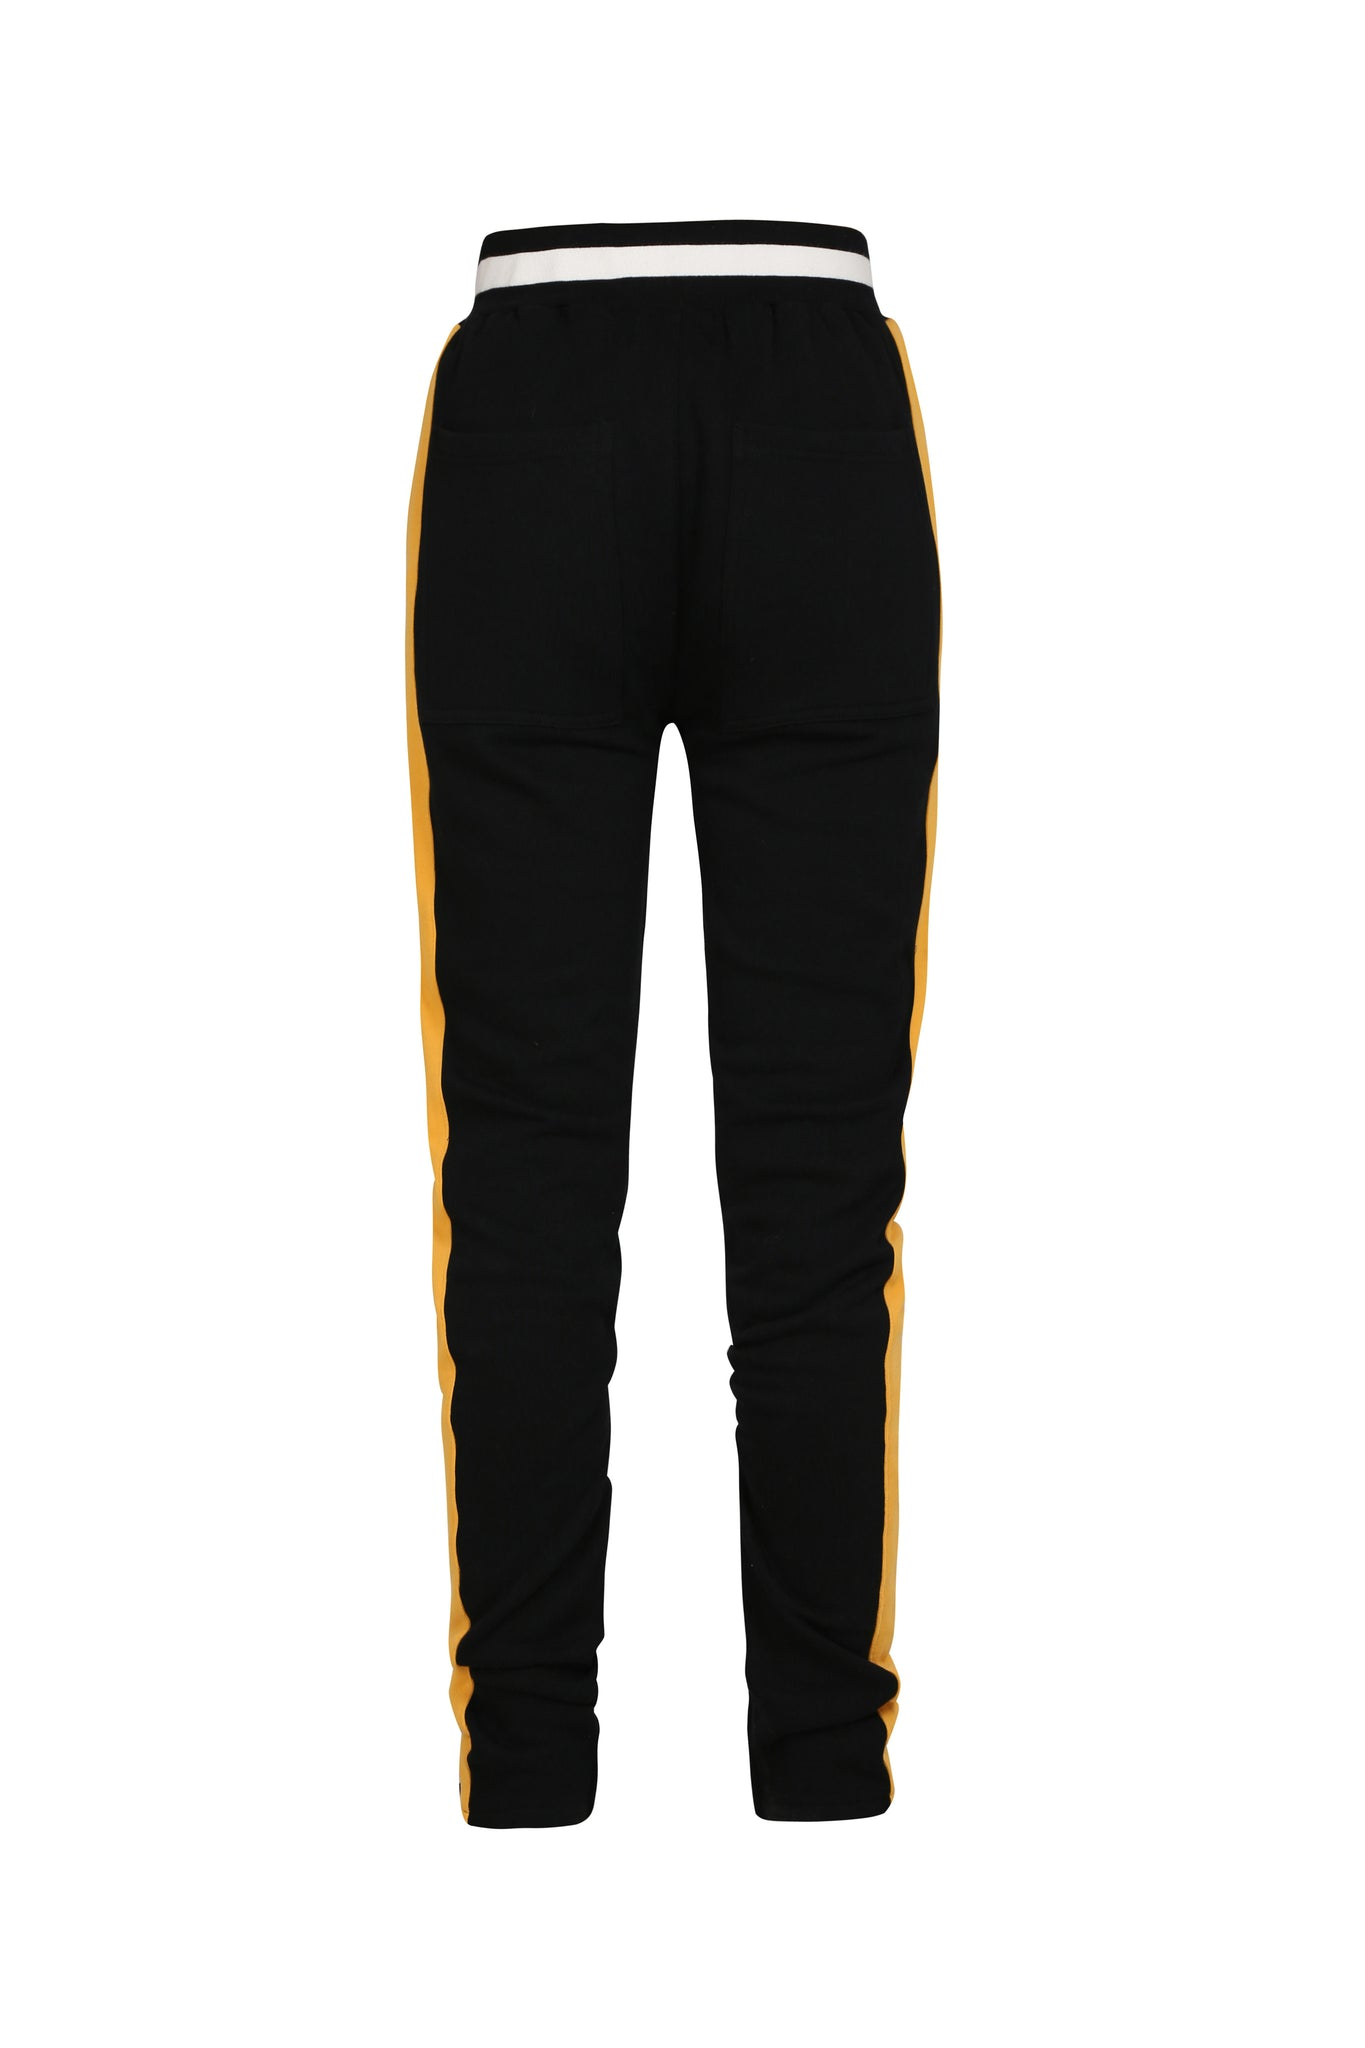 STRIPED TRACK PANTS BLACK/YELLOW